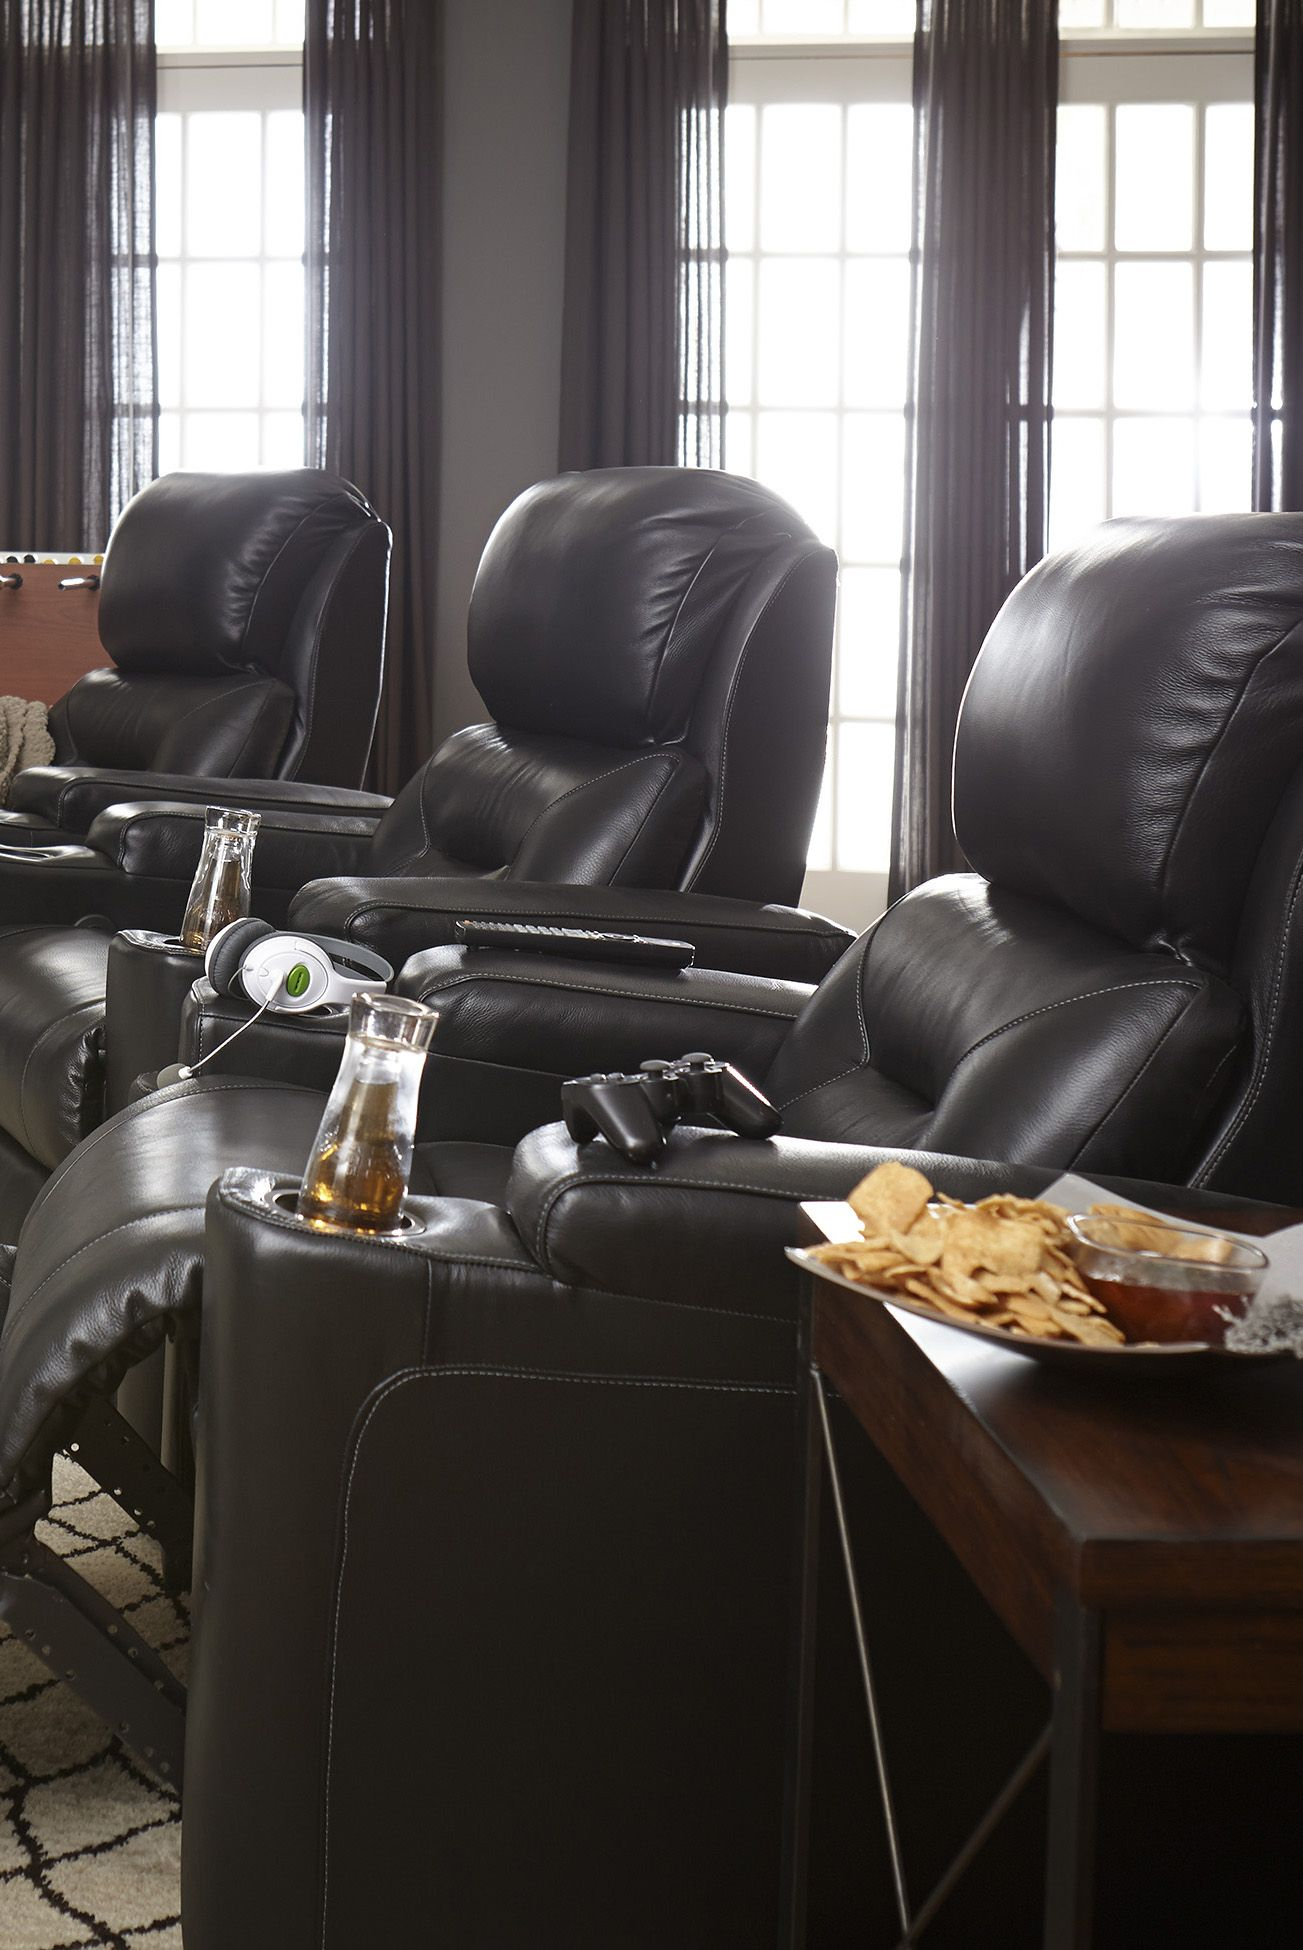 Wrangler Recliner How To Host The Perfect Football Game